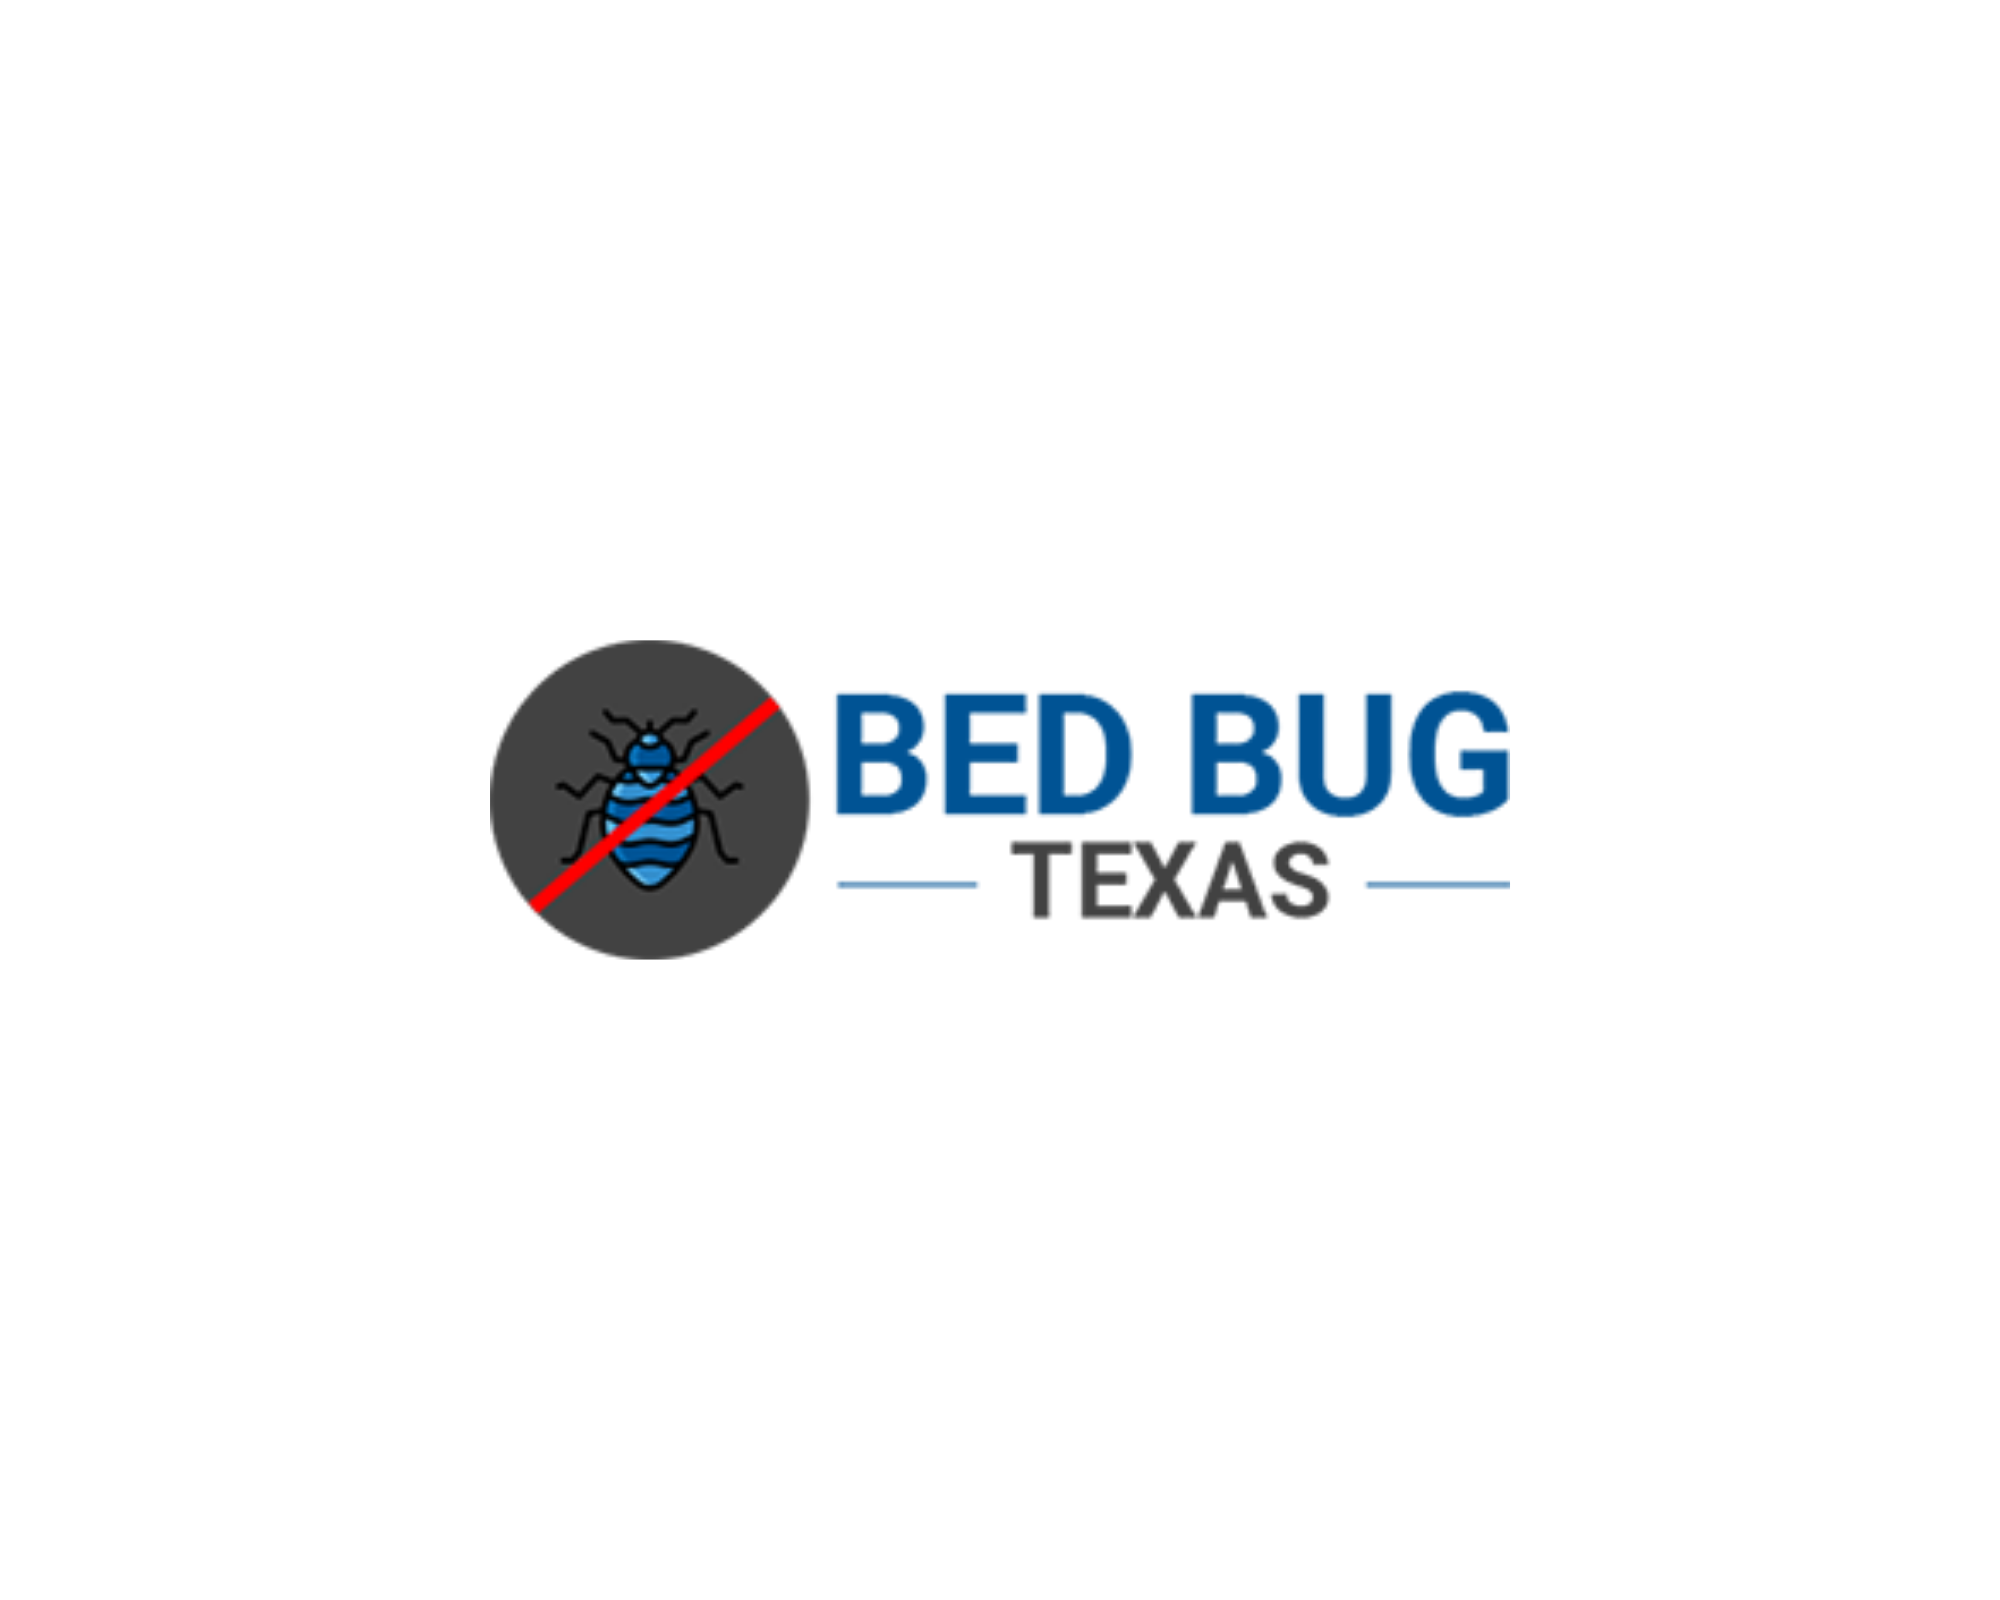 Bed Bug Texas